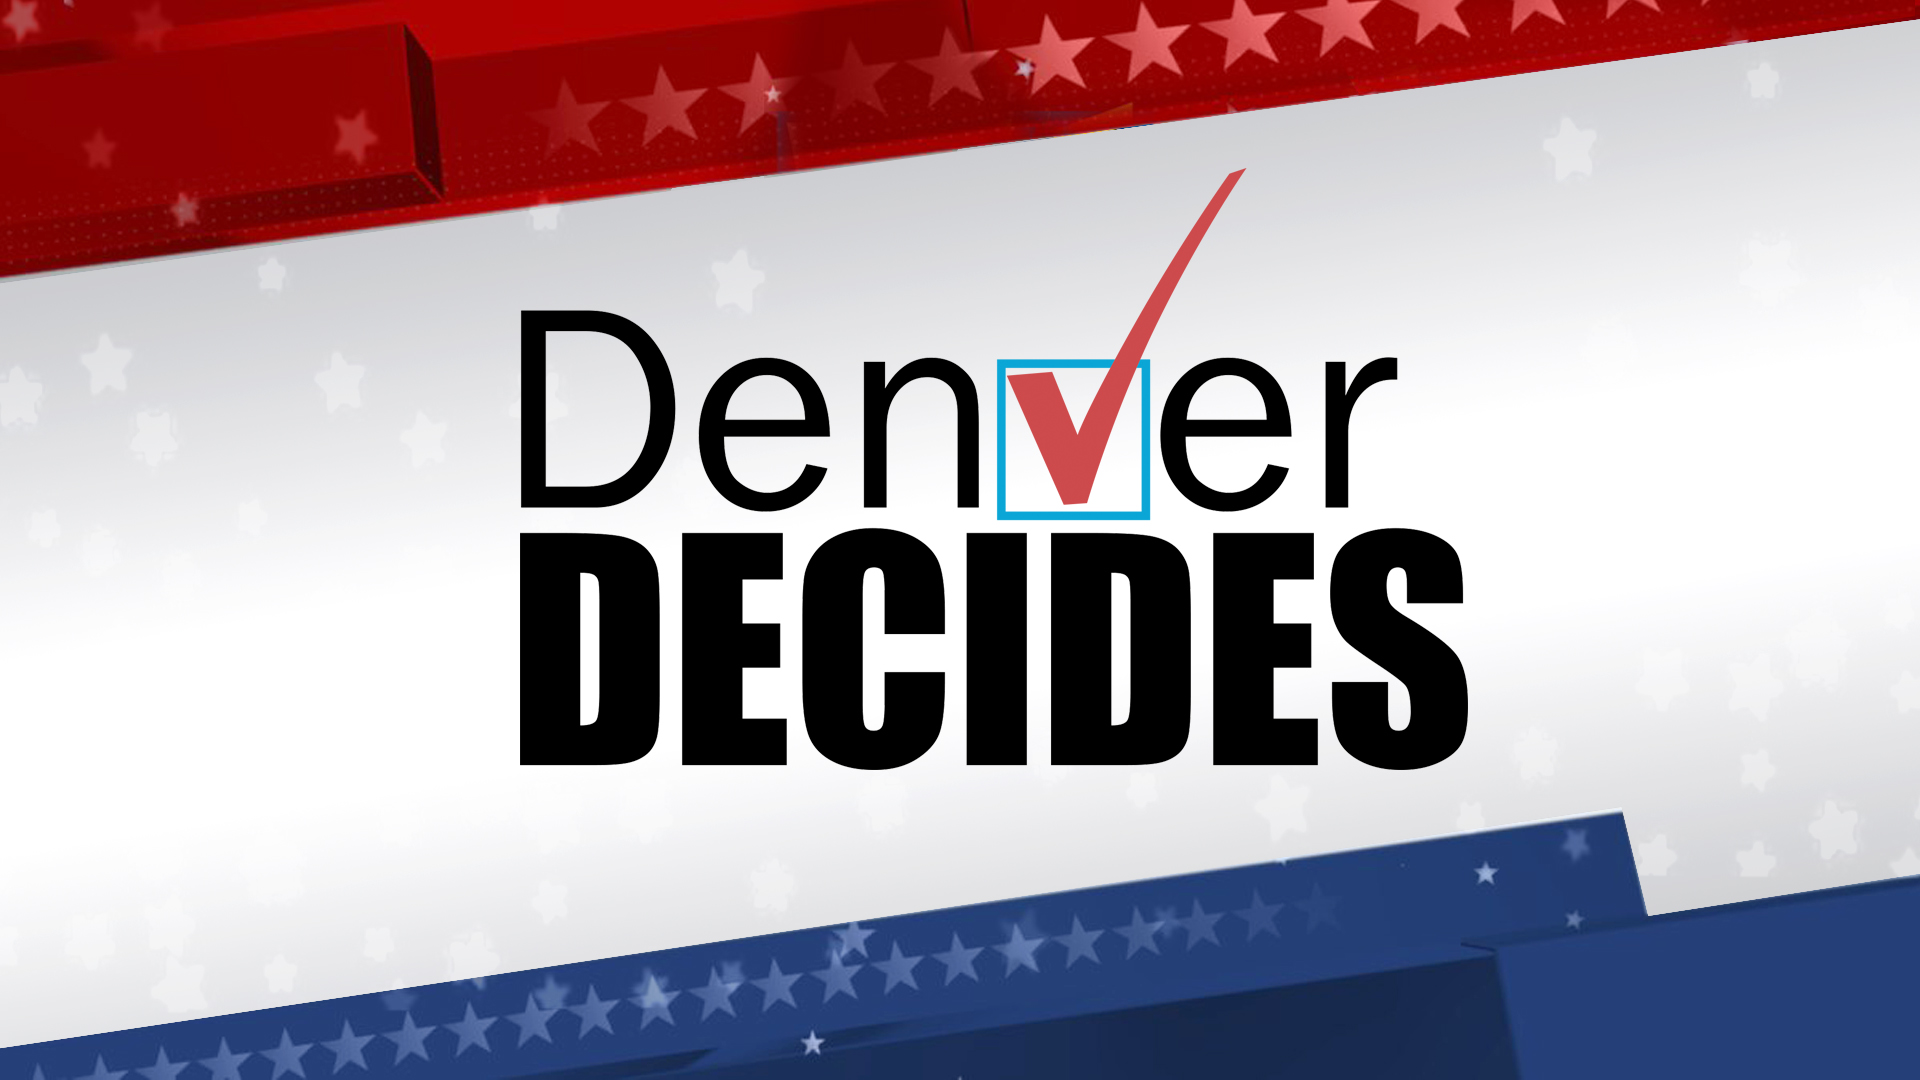 Denver Decides logo